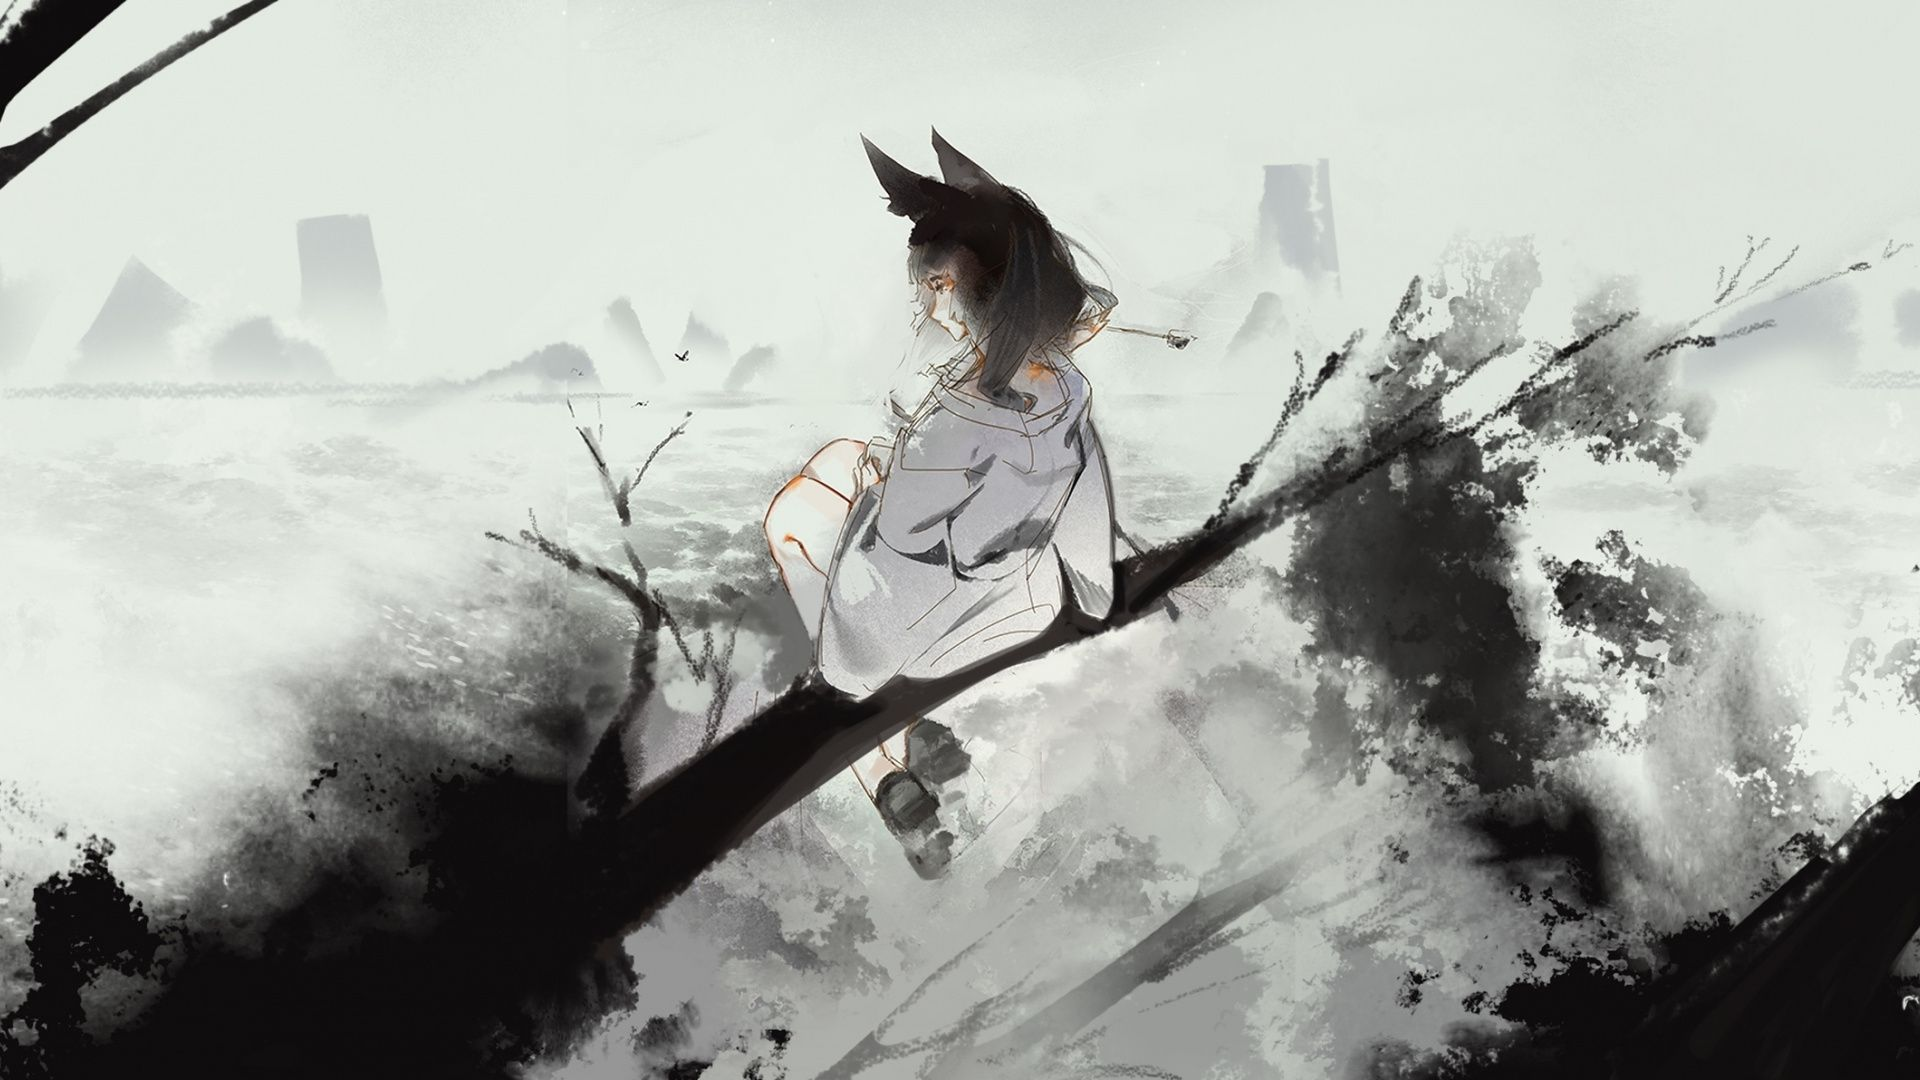 Anime wall collage kit,anime aesthetic pictures 50pcs anime manga posters for room aesthetic black and white anime panel postcard for. Black And White Aesthetic Desktop Anime Wallpapers ...